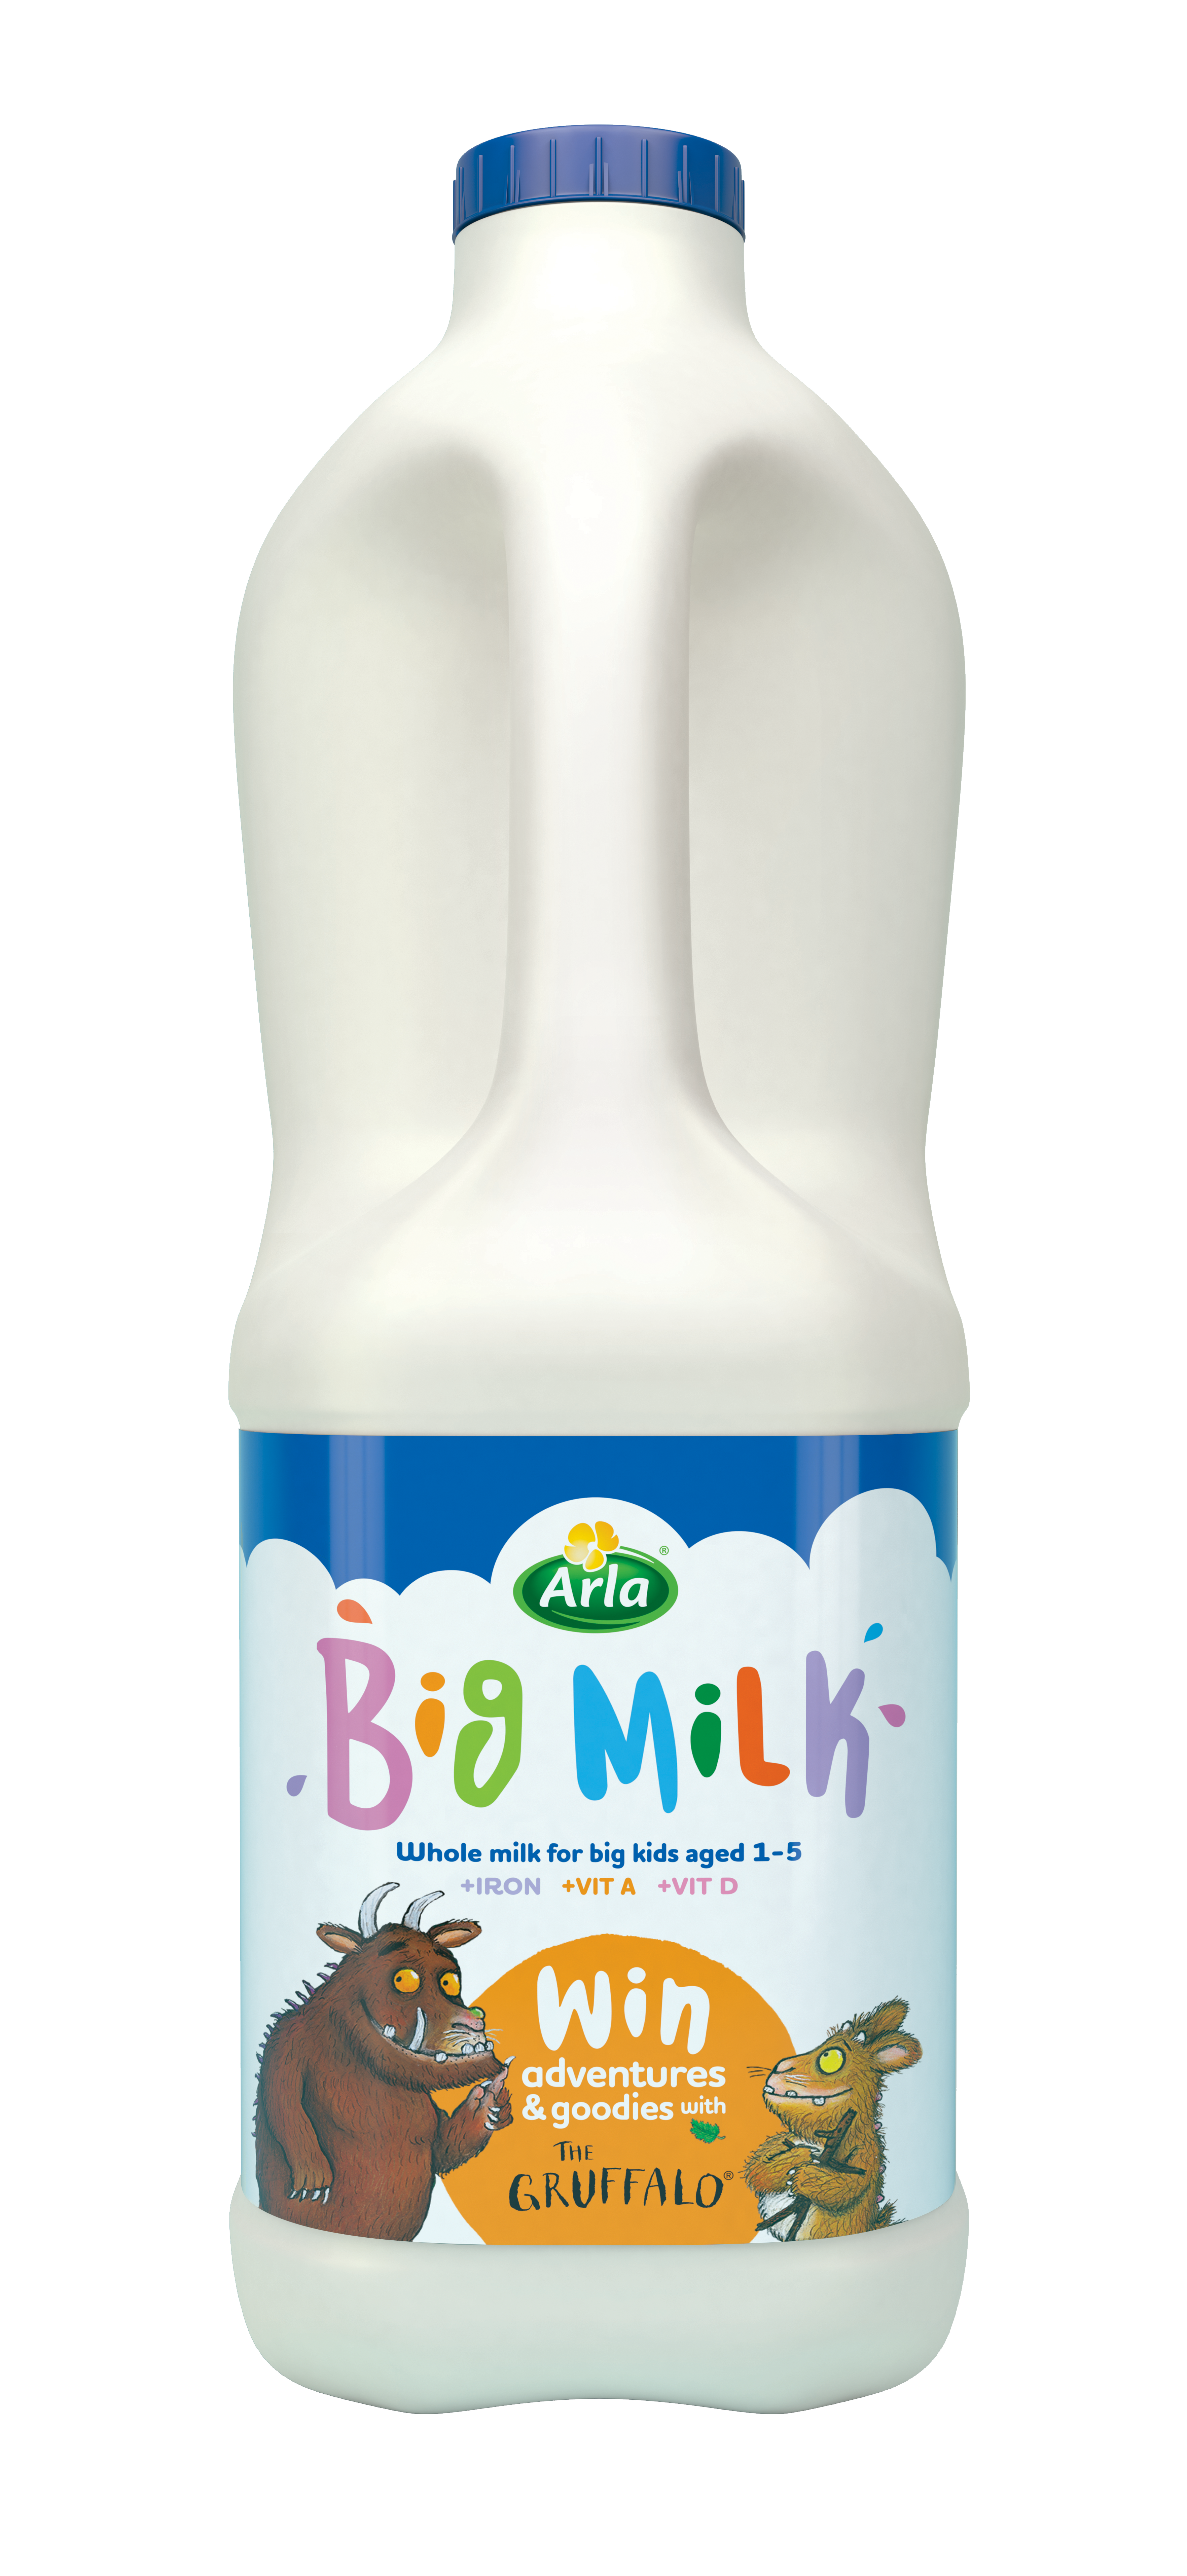 Arla BIG Milk Big milk 2L